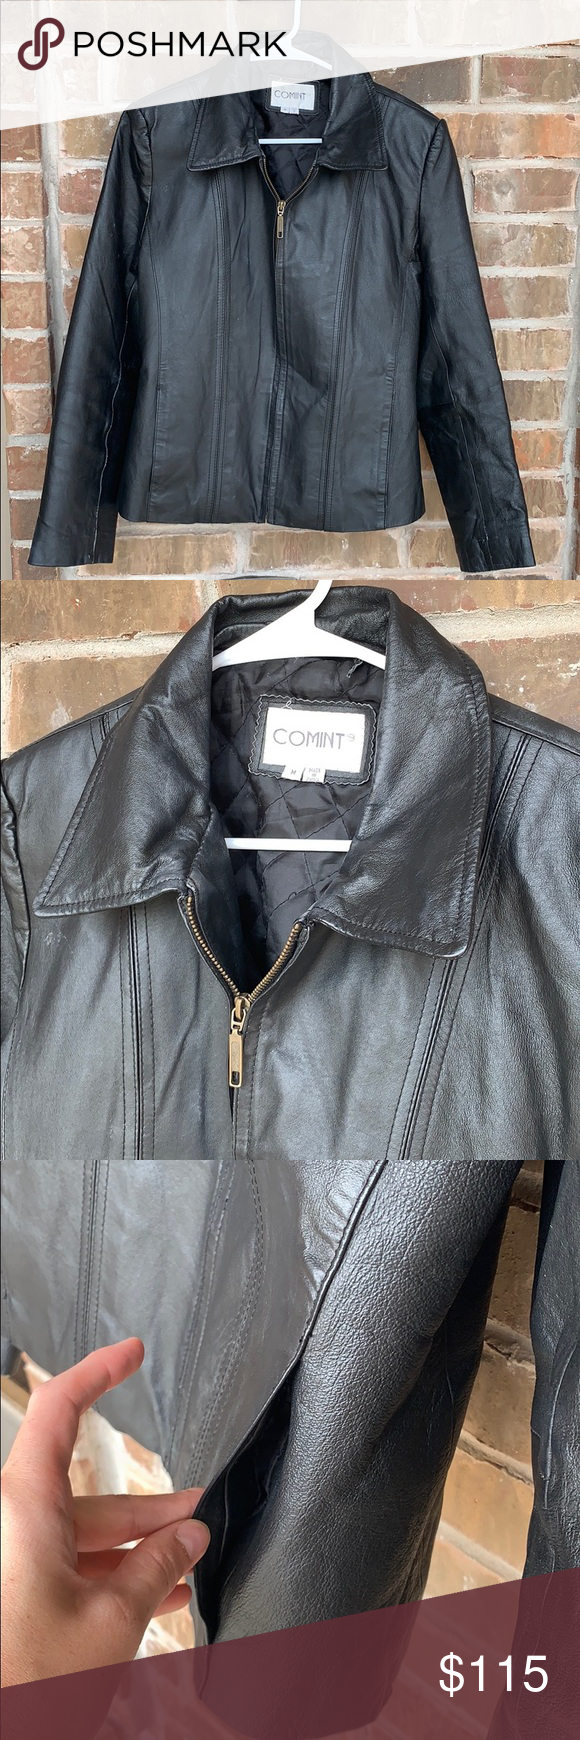 100 Genuine Leather Jacket Leather Women S Jacket In Great Shape This Jacket Is Absolutely Beautiful And Is Pe Genuine Leather Jackets Leather Jacket Jackets [ 1740 x 580 Pixel ]